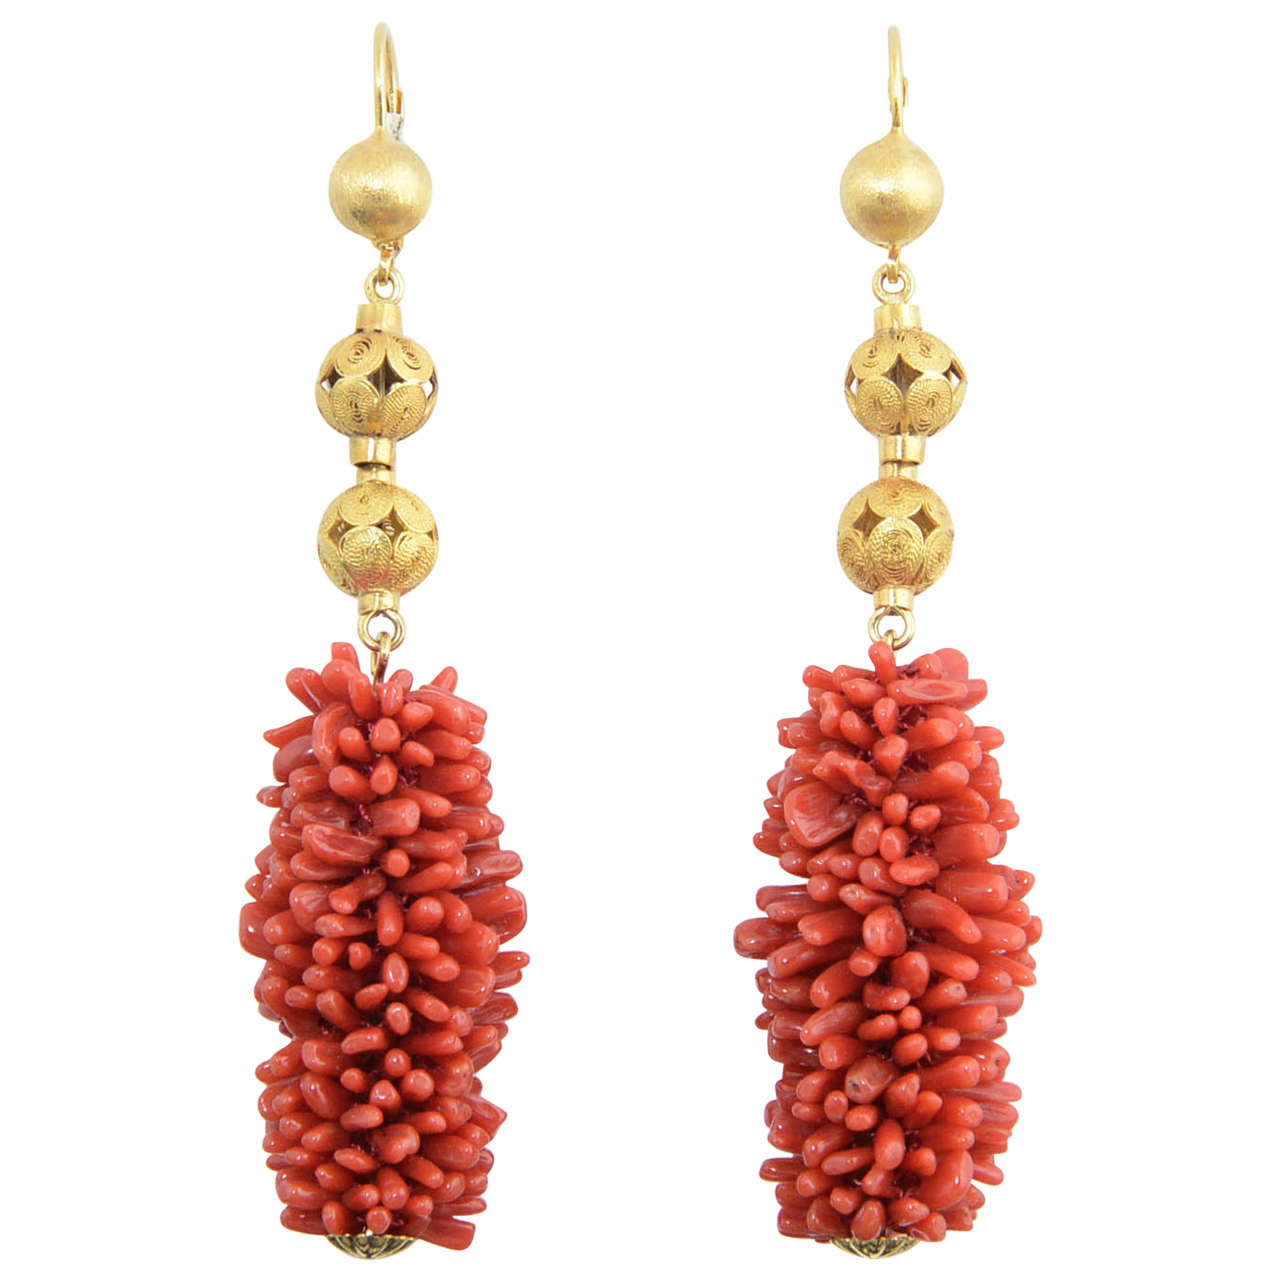 20th Century Long Coral Gold Ball Earrings